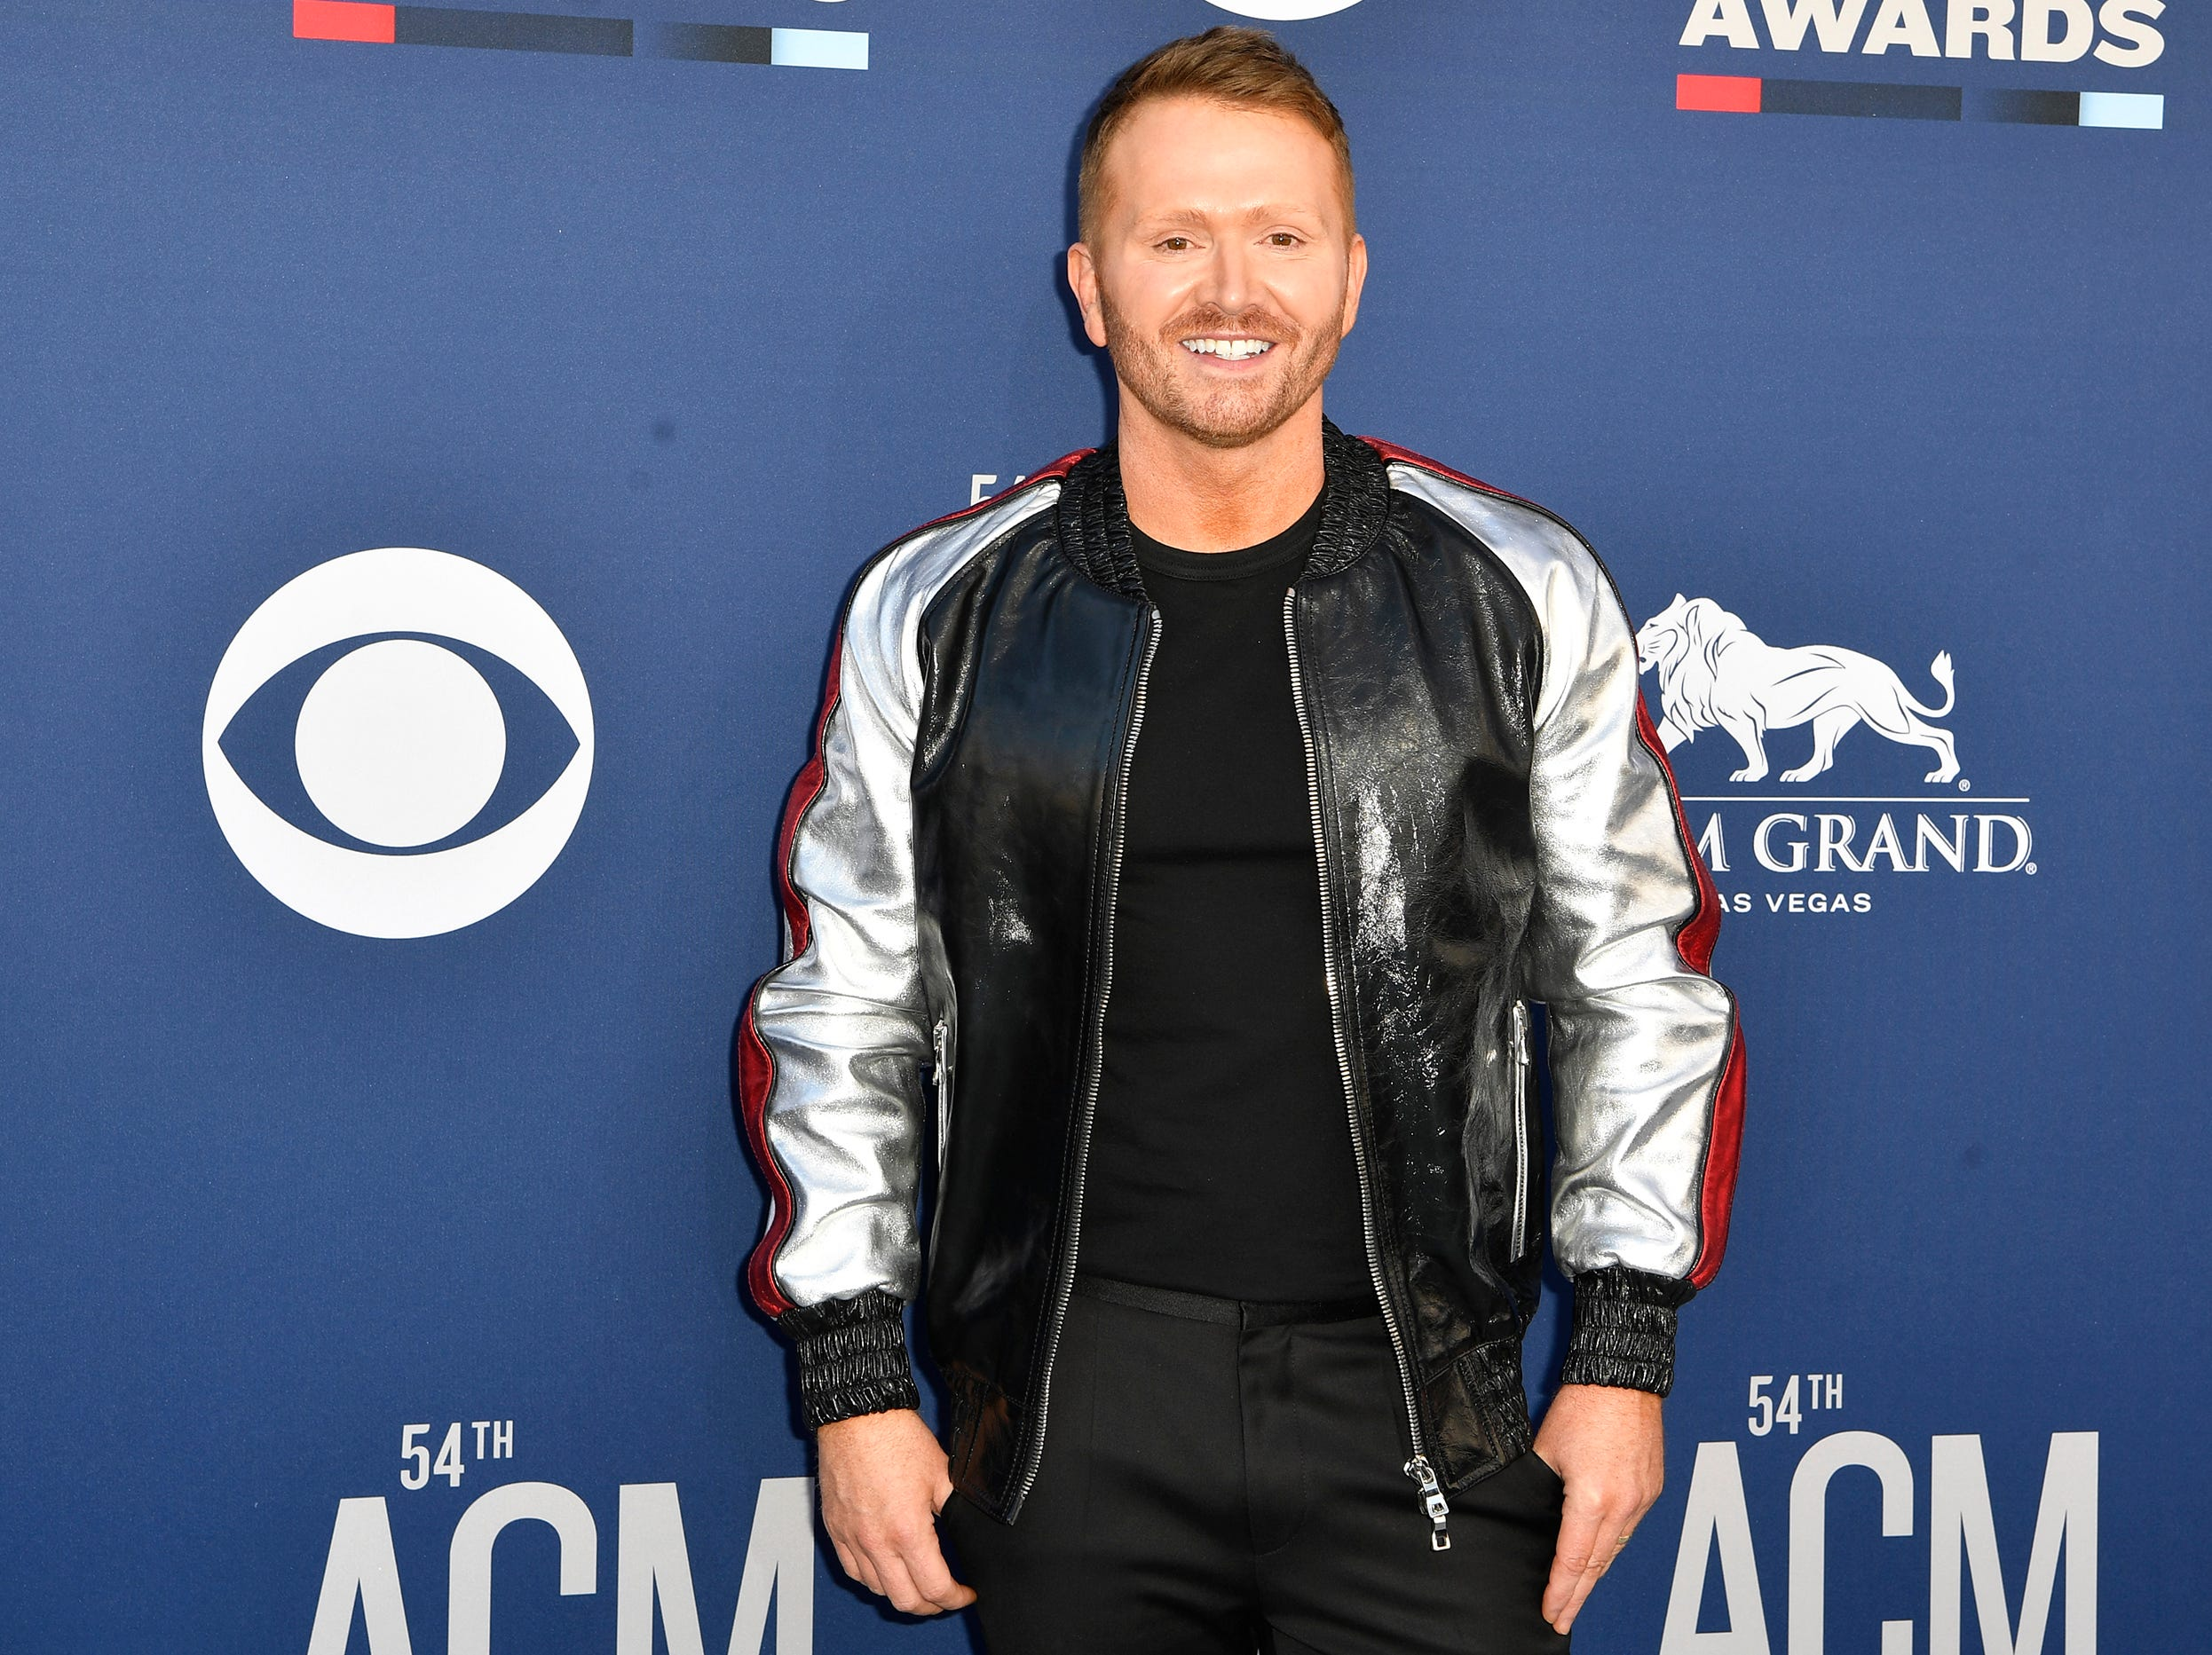 Shane McAnally walks the red carpet at the 54TH Academy of Country Music Awards Sunday, April 7, 2019, in Las Vegas, Nev.